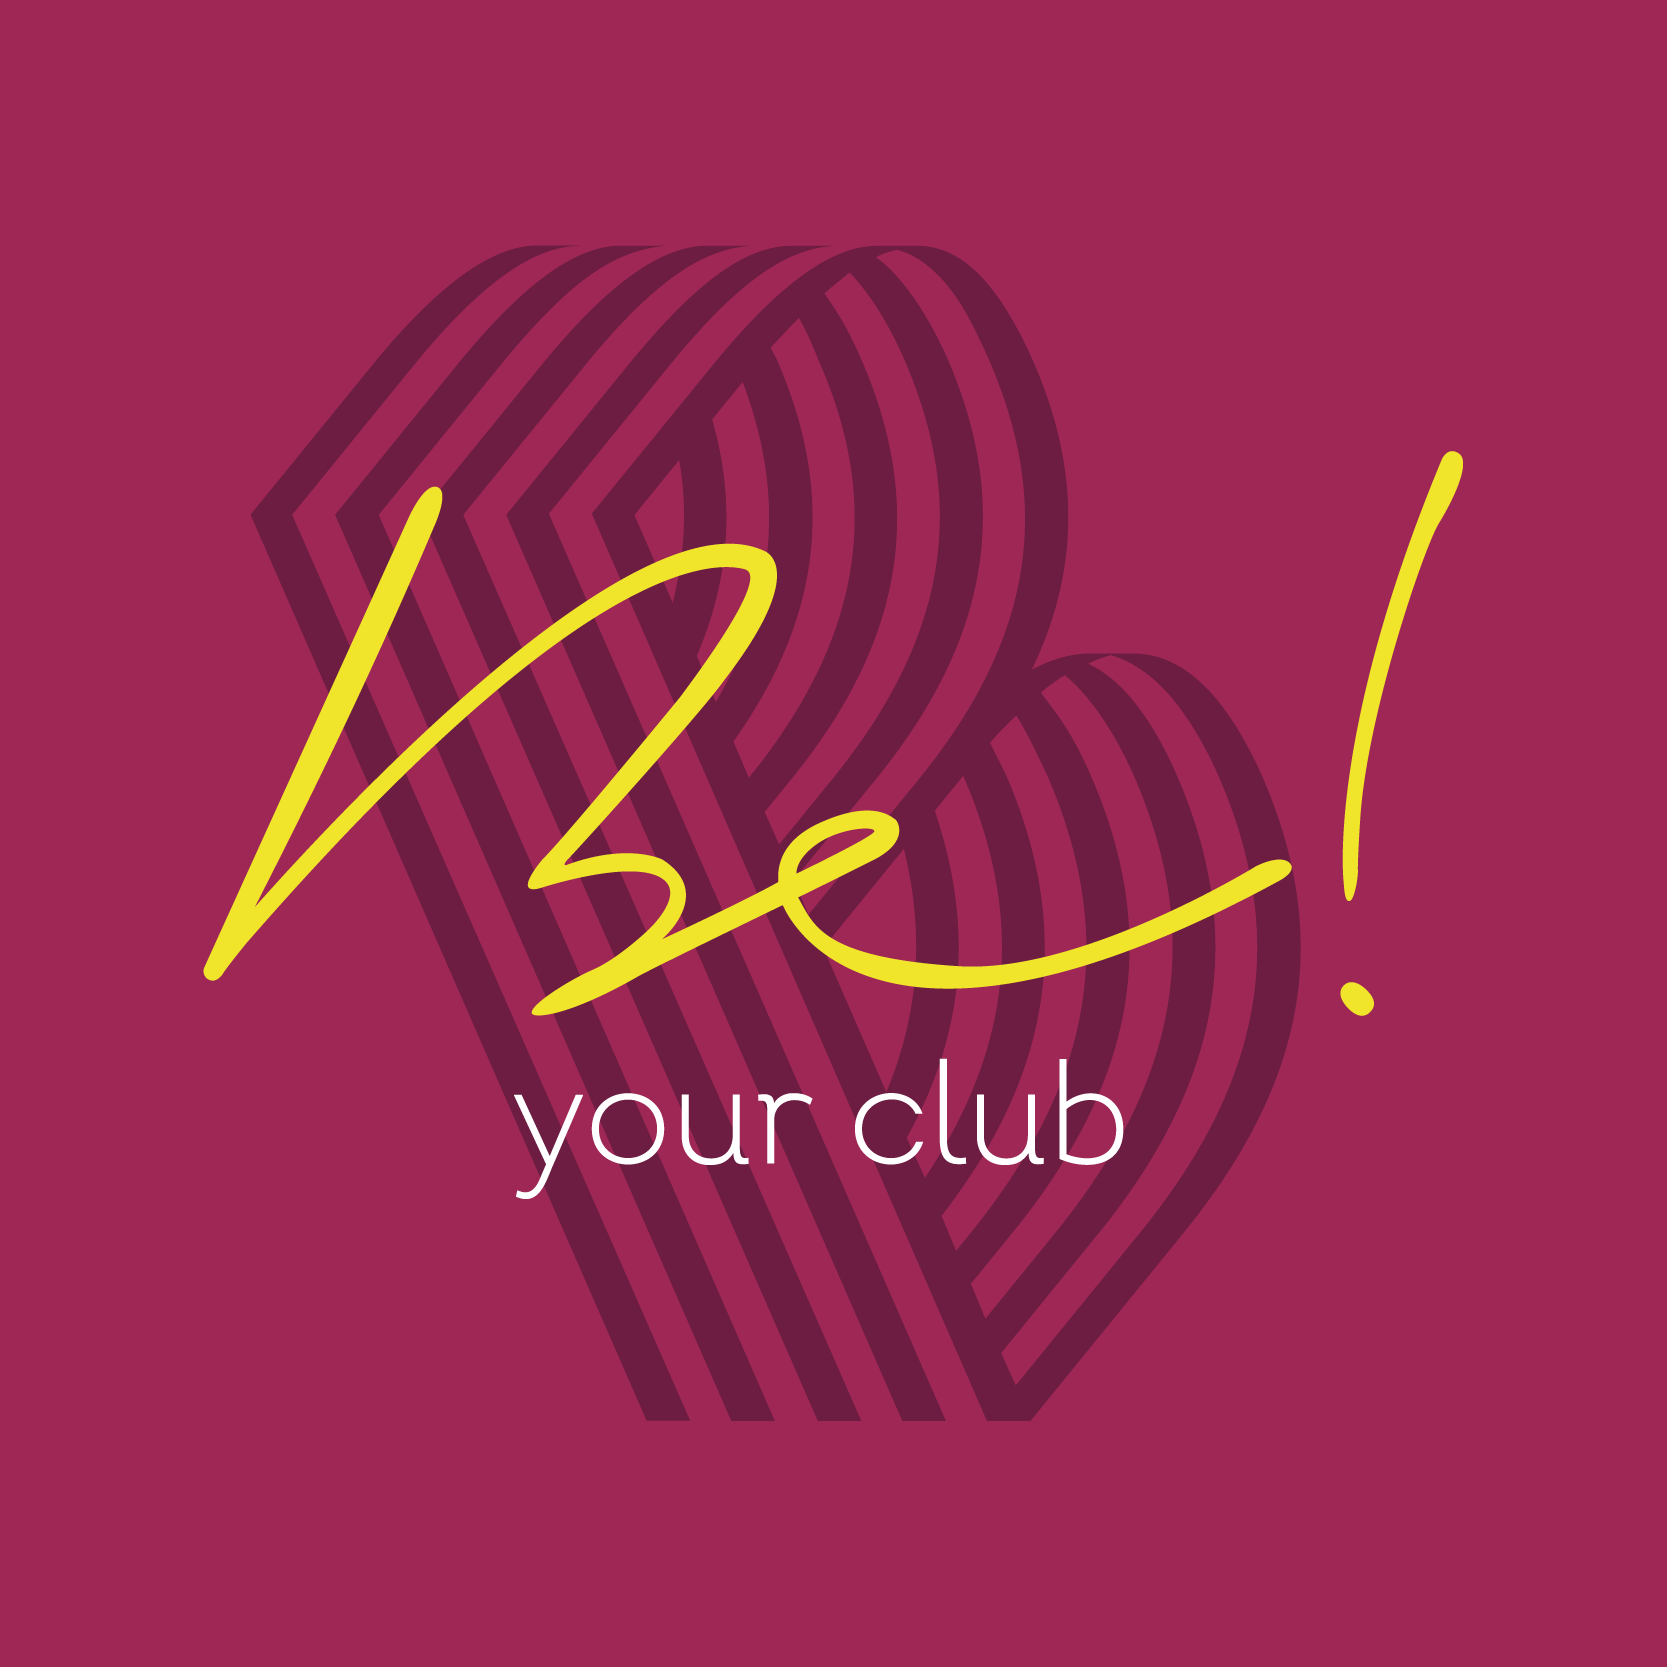 Be your club